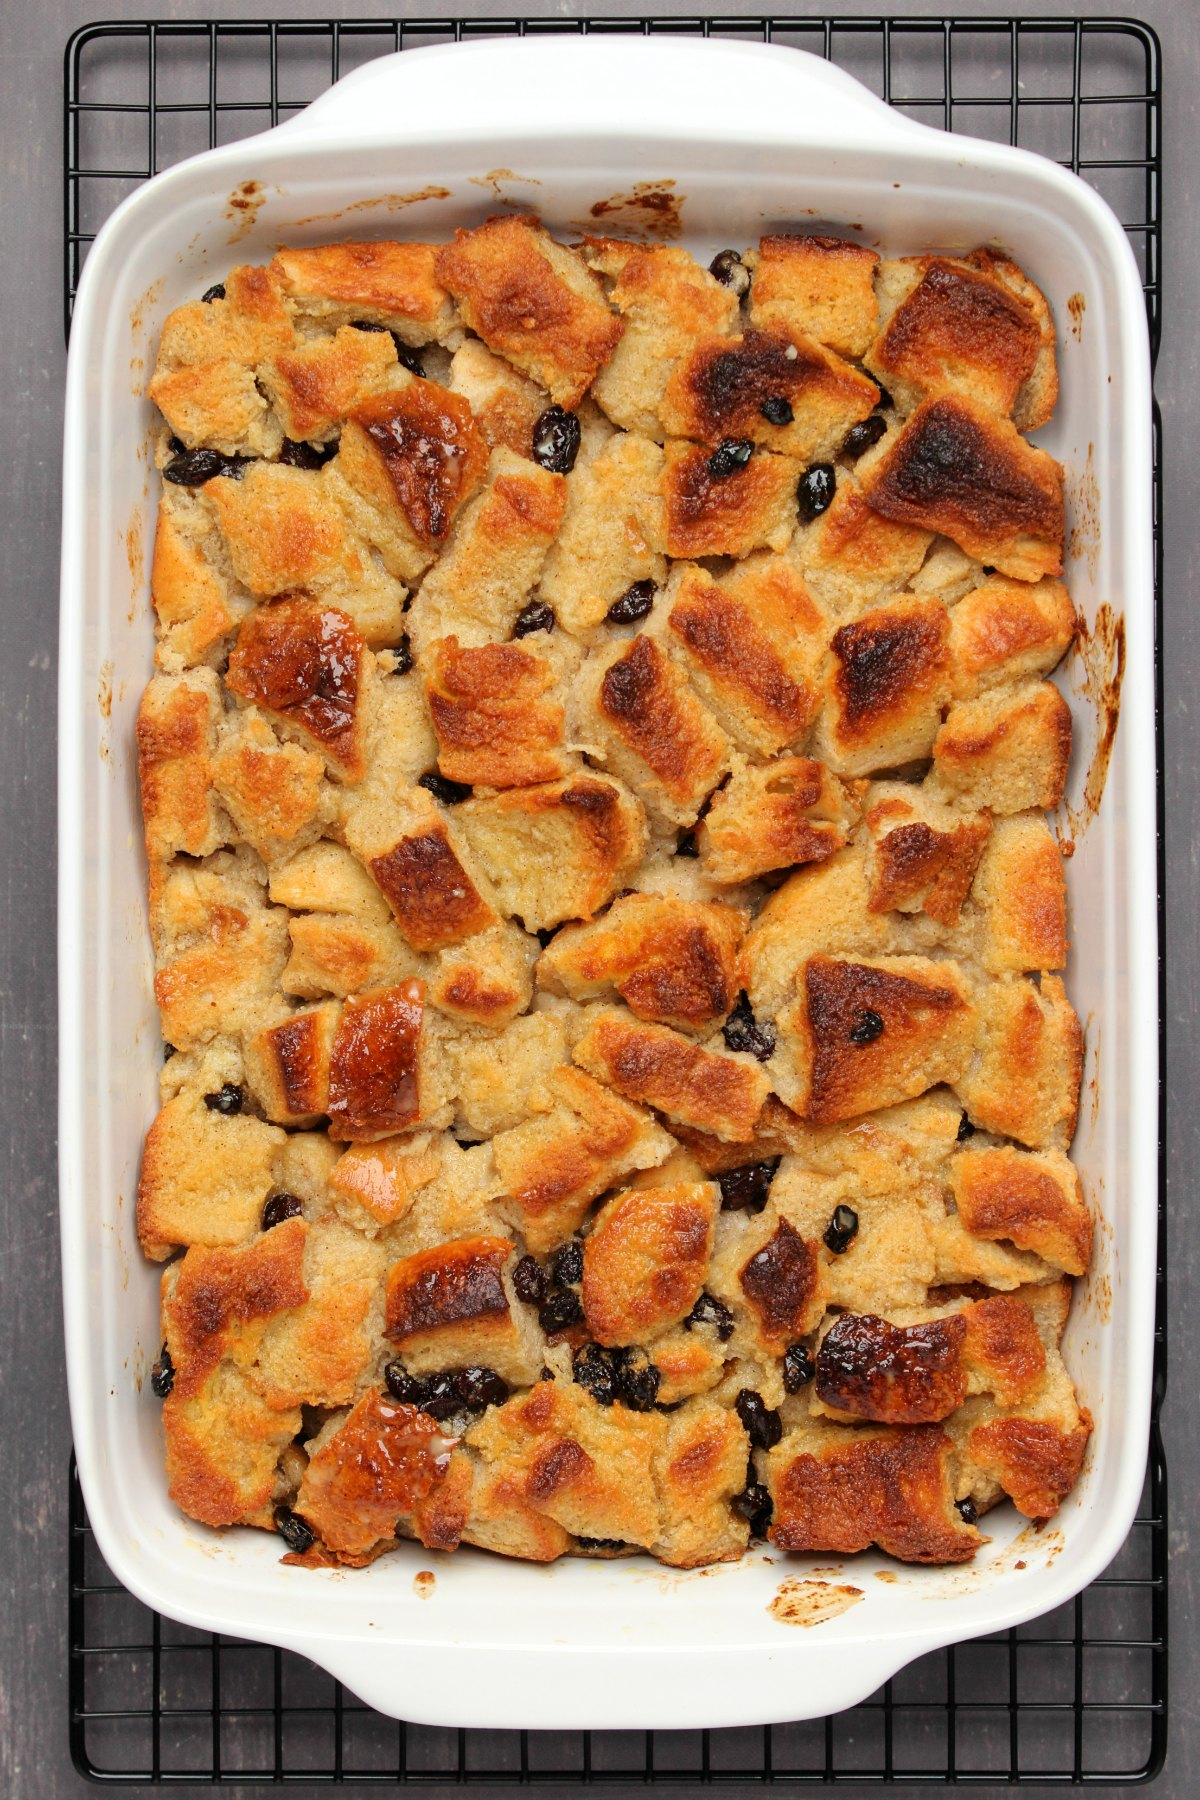 Freshly baked bread pudding in a white dish.